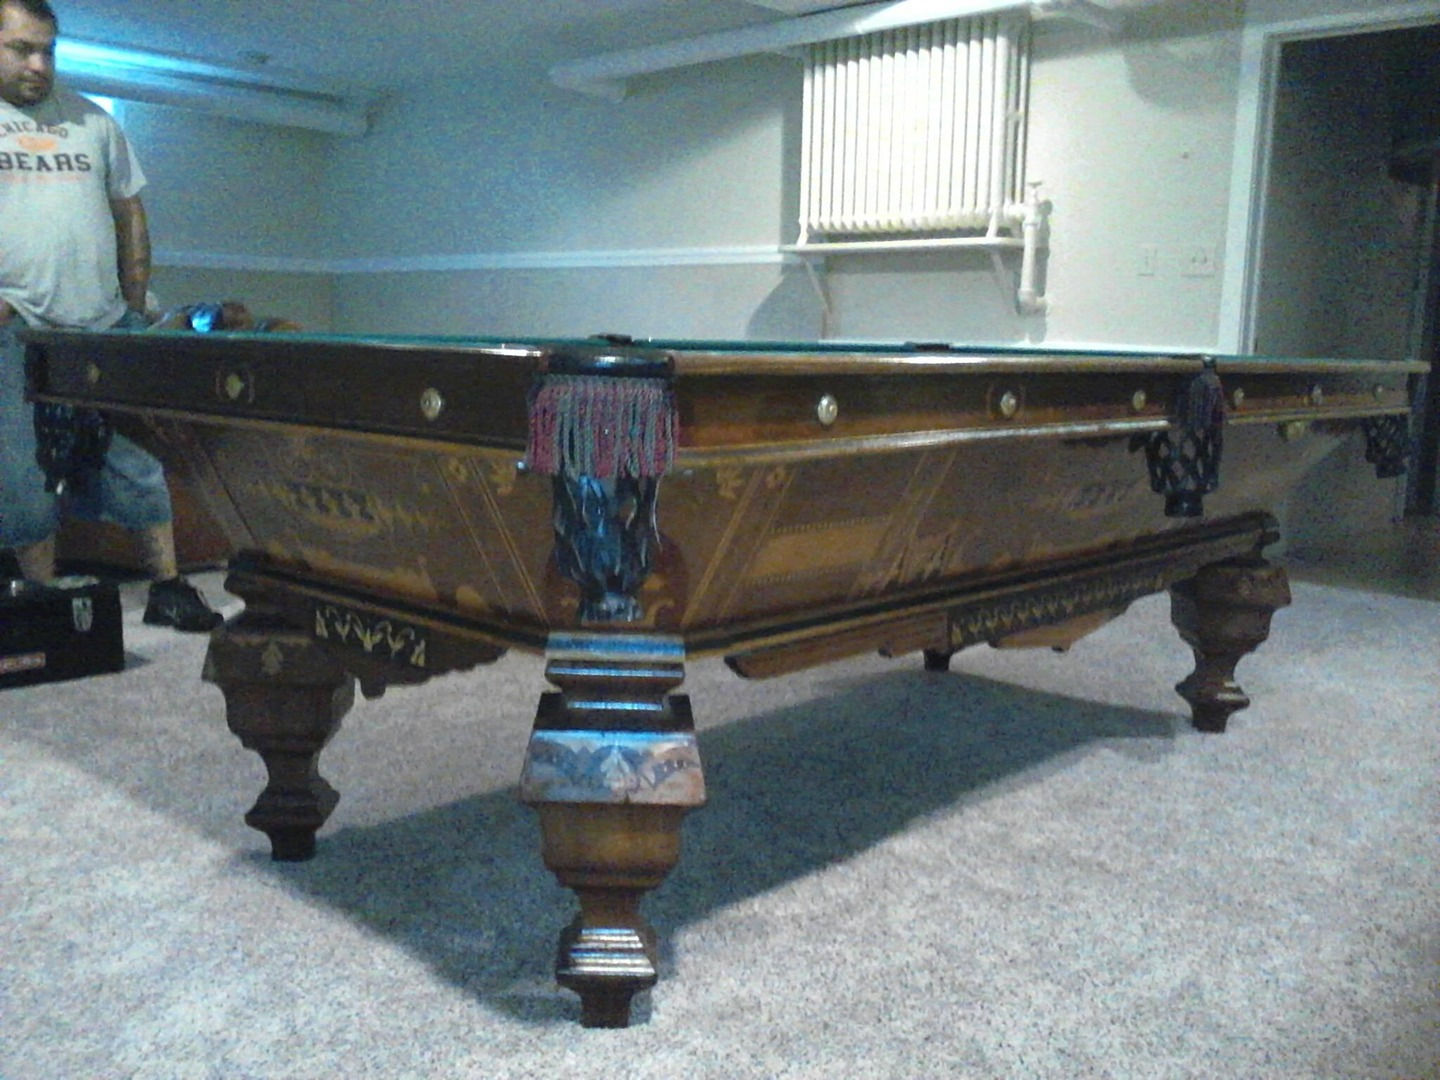 tables in furniture bars delightful sizes san design accessories me dimensions inches standard ct near pool table movers antonio robertson room now